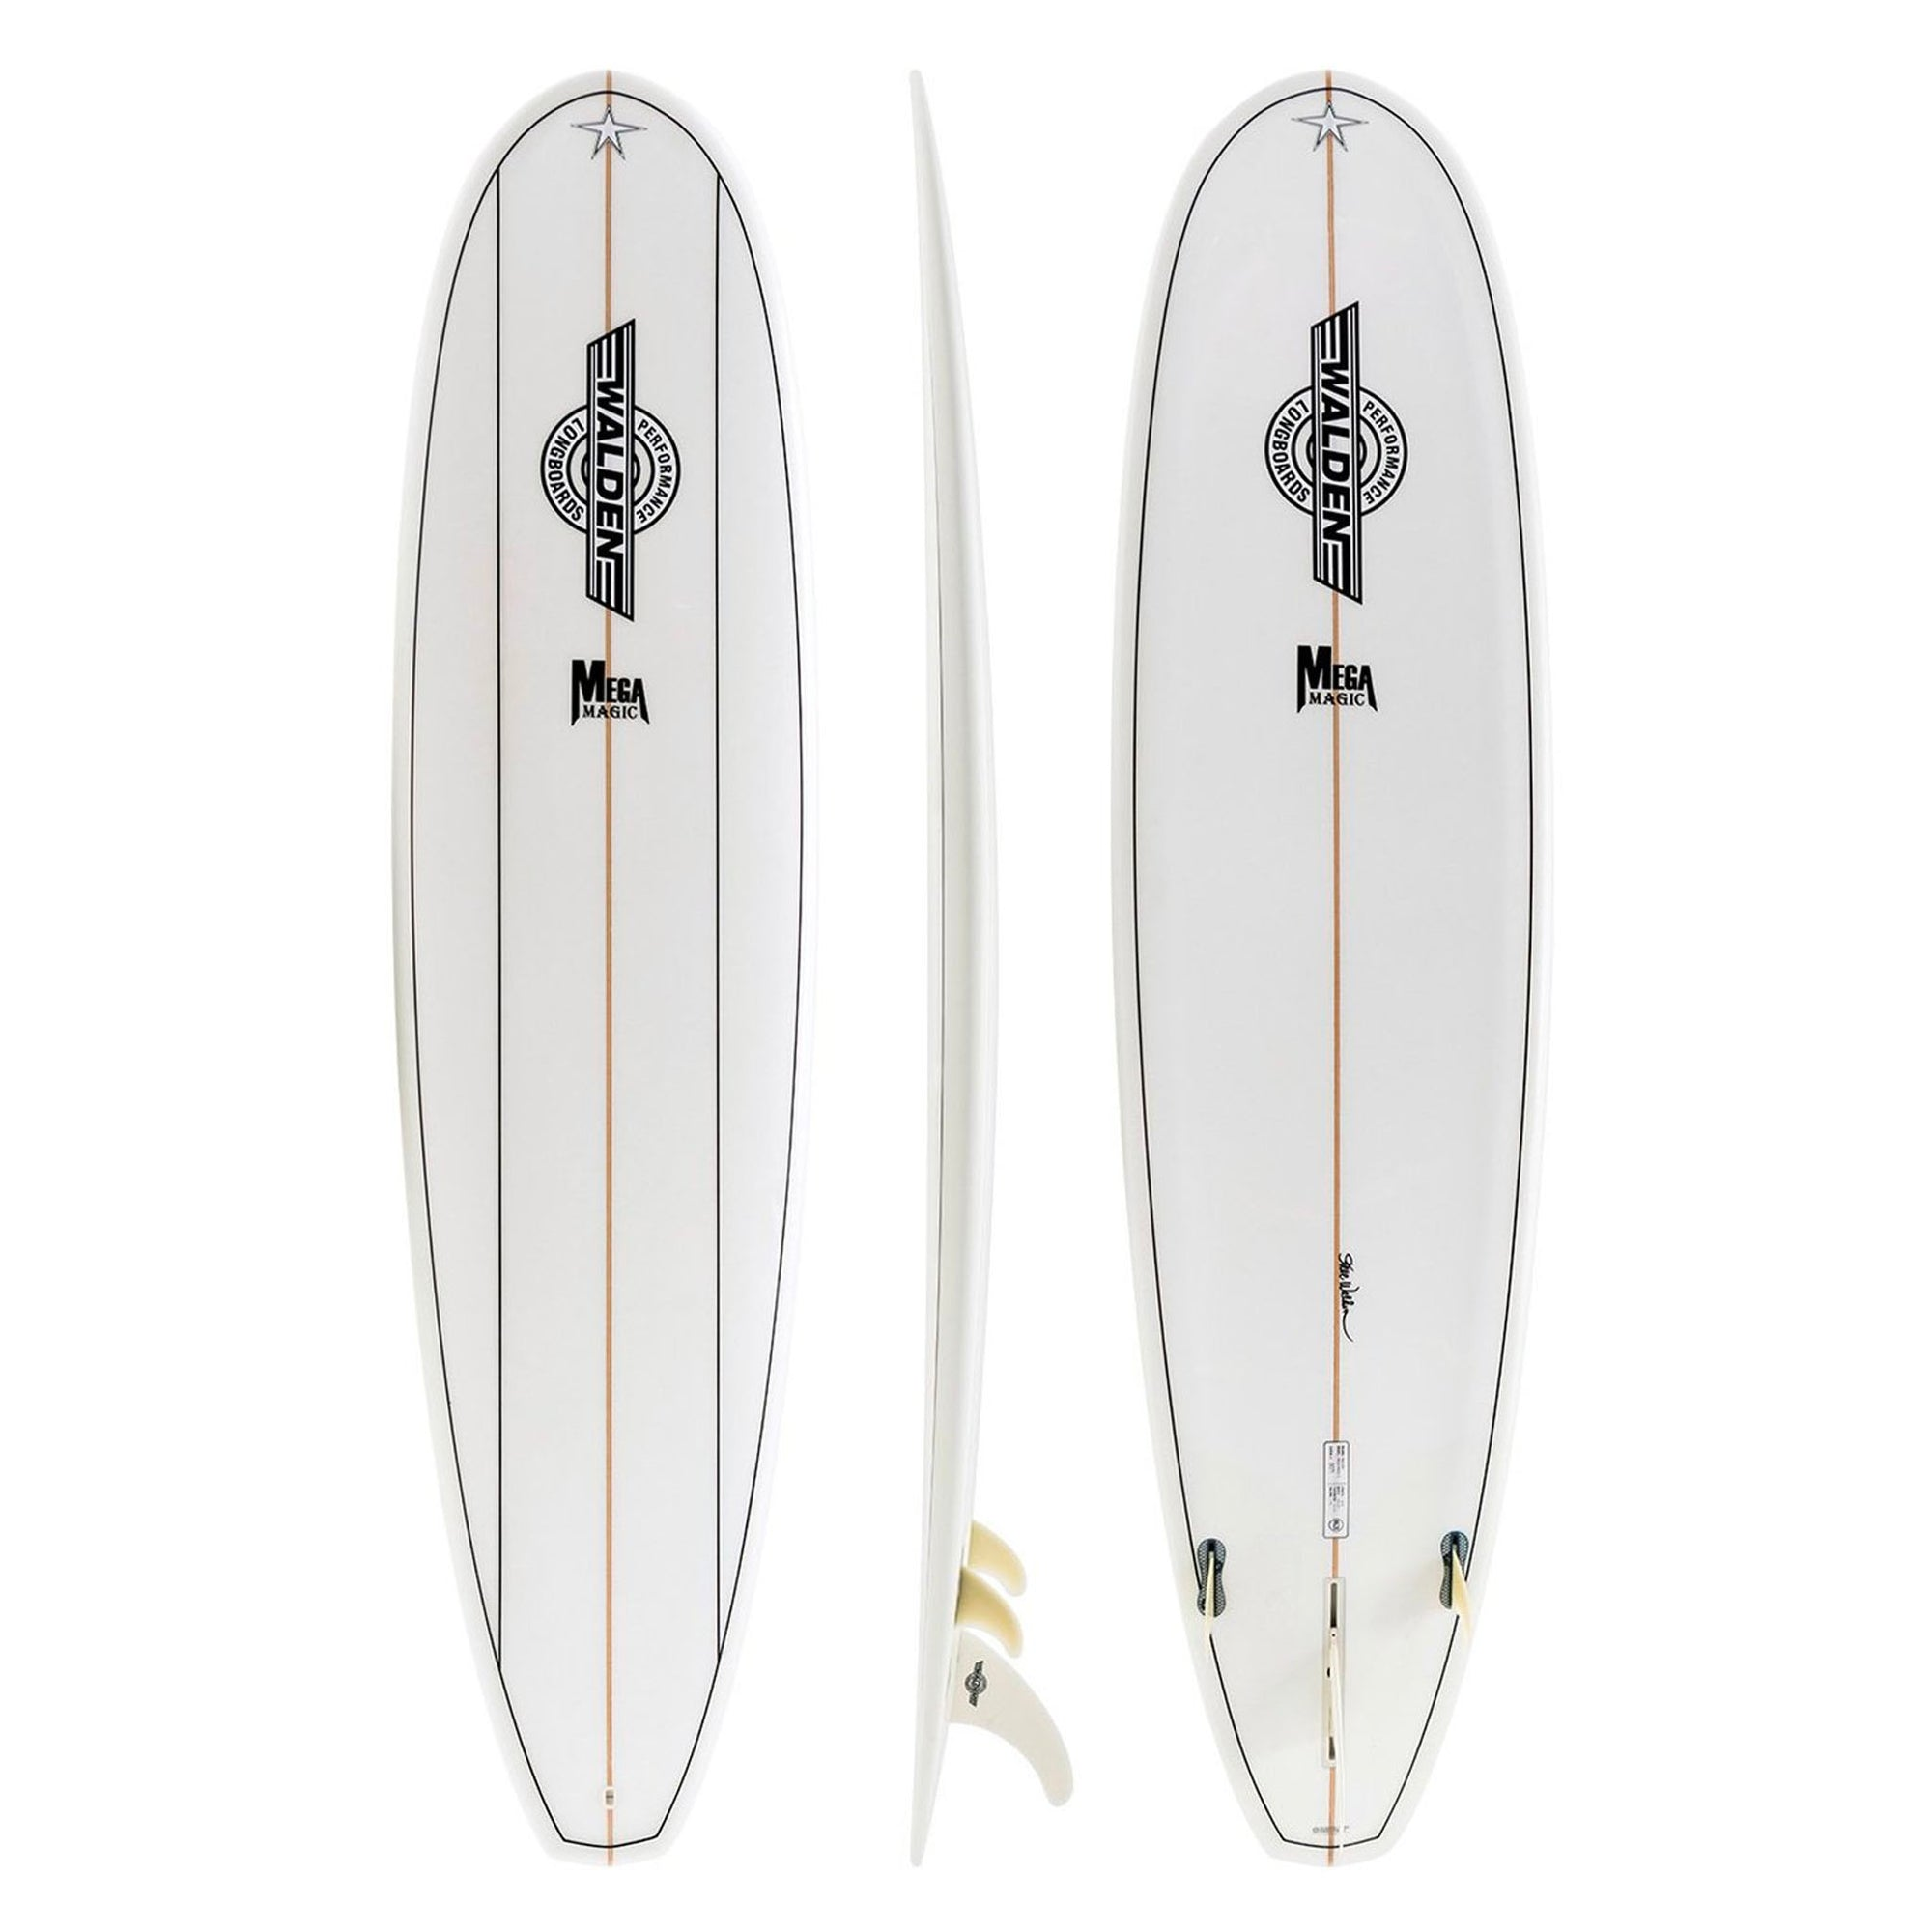 Walden Mega Magic 2 Surfboard - SLX